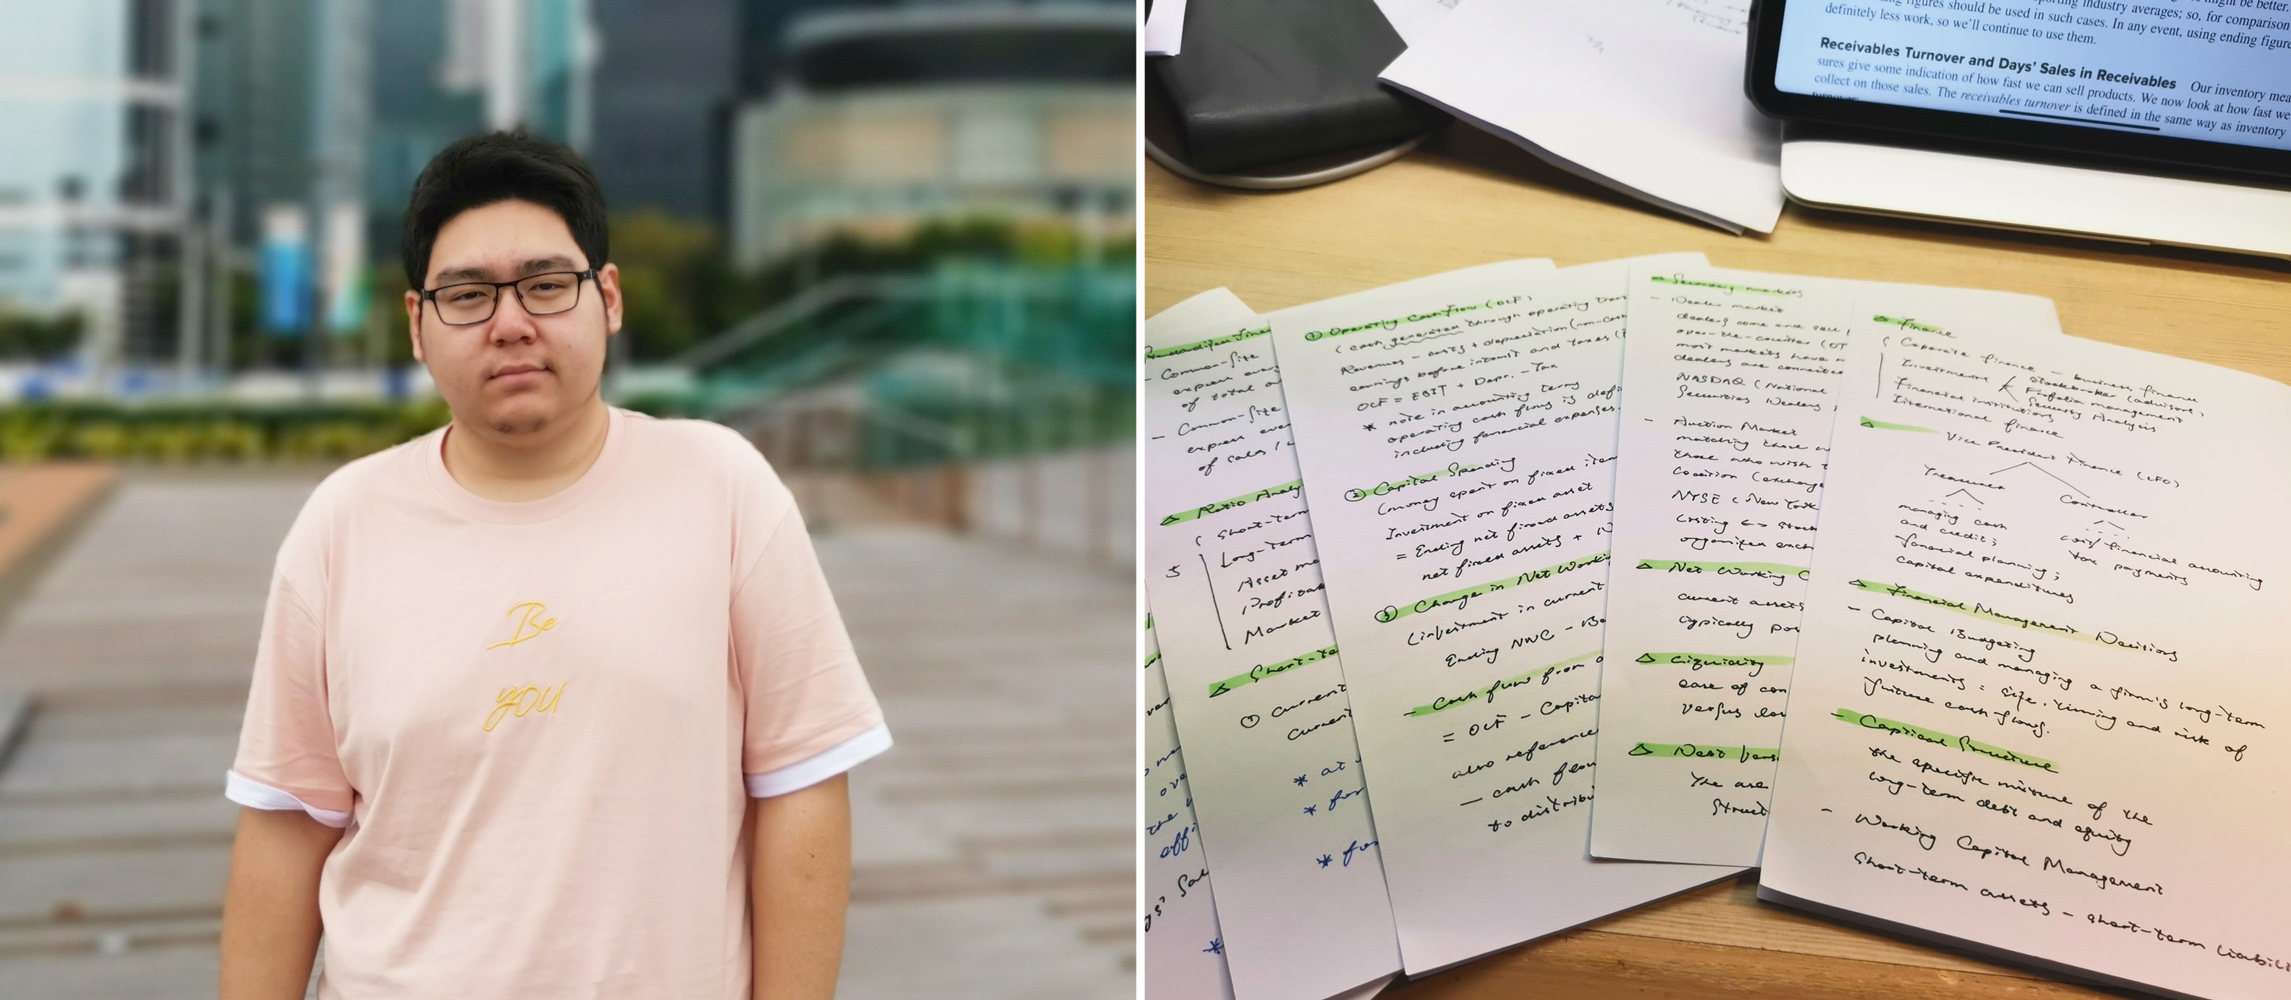 Wang Zifan is studying hard during the epidemic as a 'thank you' to his professors for their dedication.